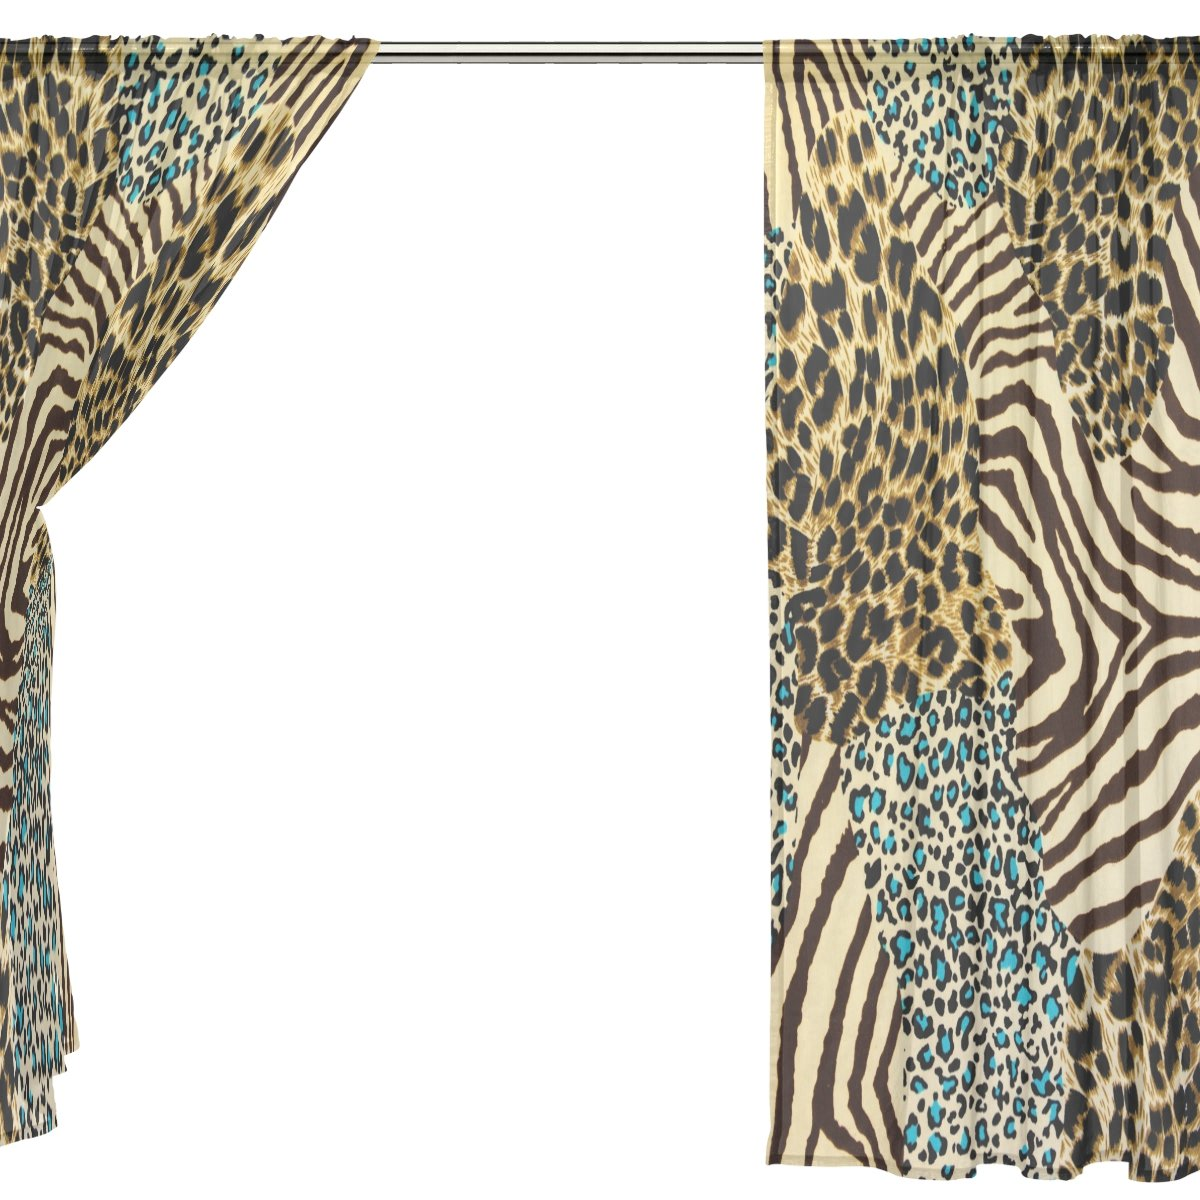 SEULIFE Window Sheer Curtain Zebra Tiger Animal Print Voile Curtain Drapes for Door Kitchen Living Room Bedroom 55x78 inches 2 Panels by SEULIFE (Image #4)